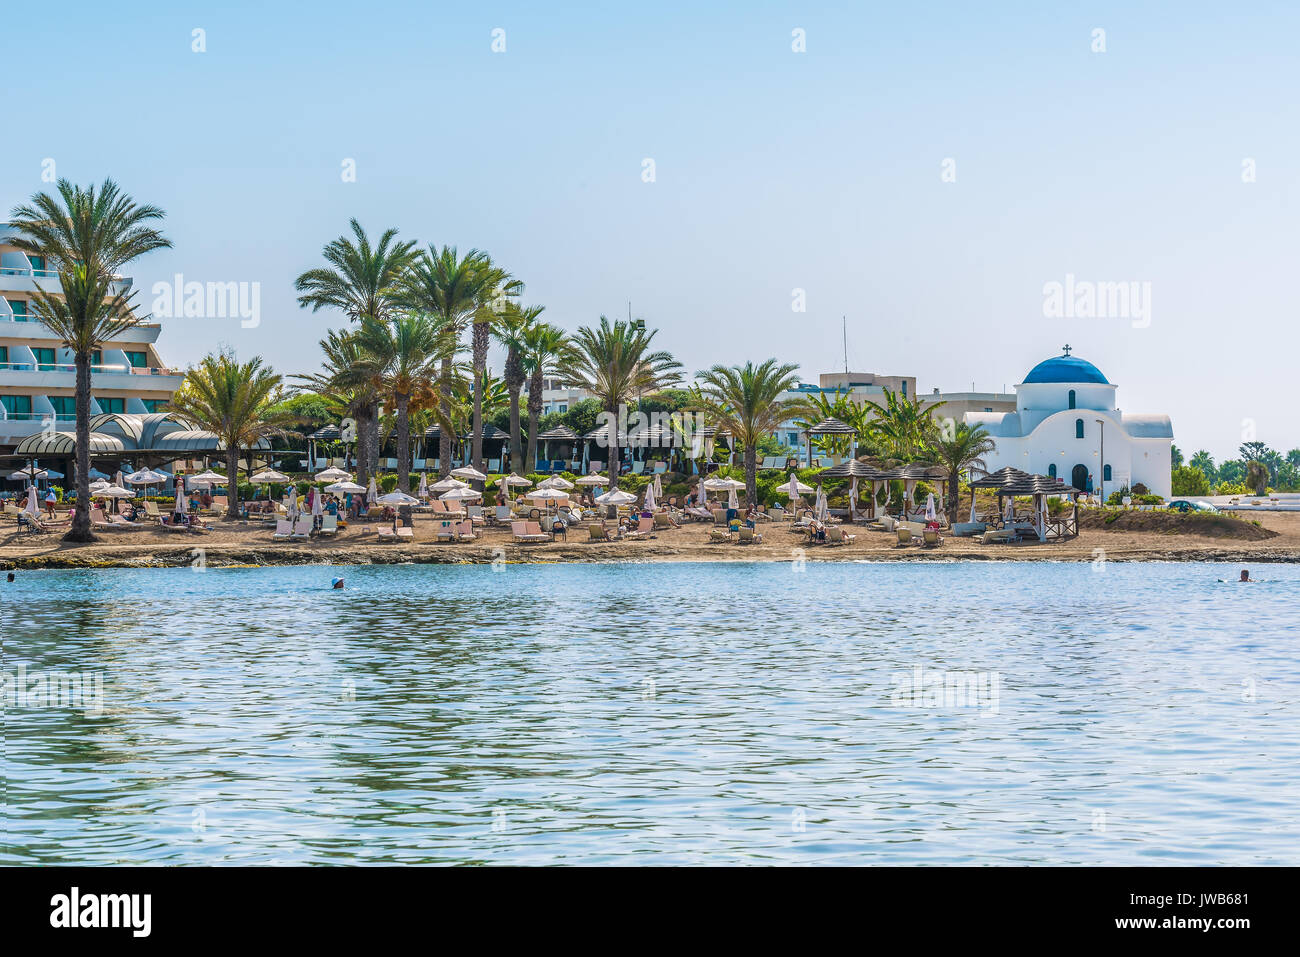 Paphos, Cyprus - September 20, 2016: View of the beautiful beach in Paphos, Cyprus. A fragment of the Mediterranean Sea and a small white Orthodox chu - Stock Image